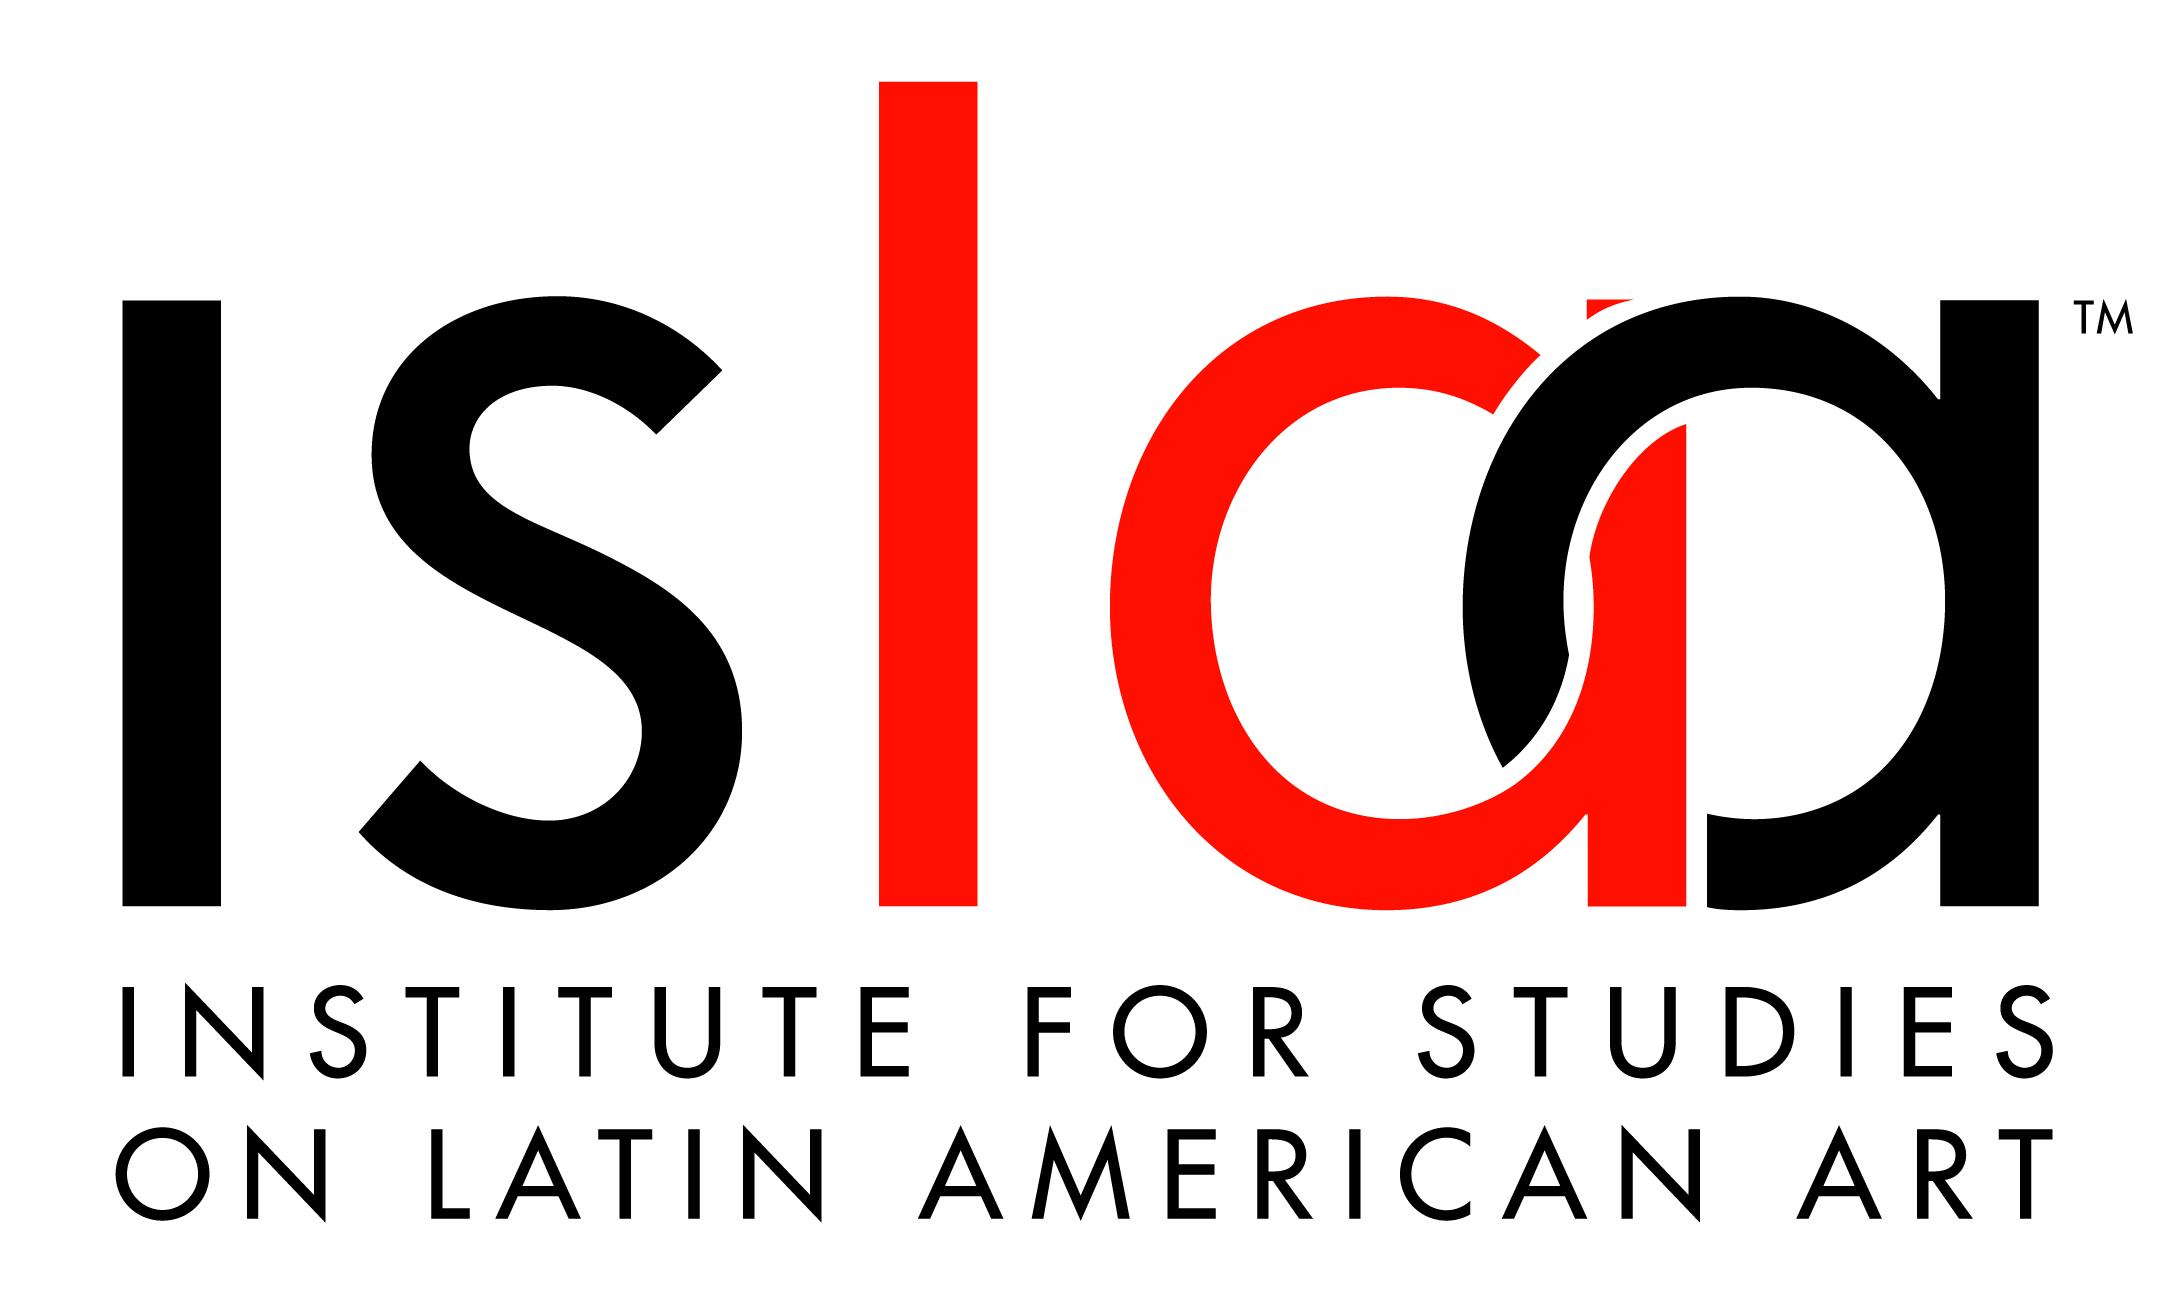 Institute for Studies on Latin American Art